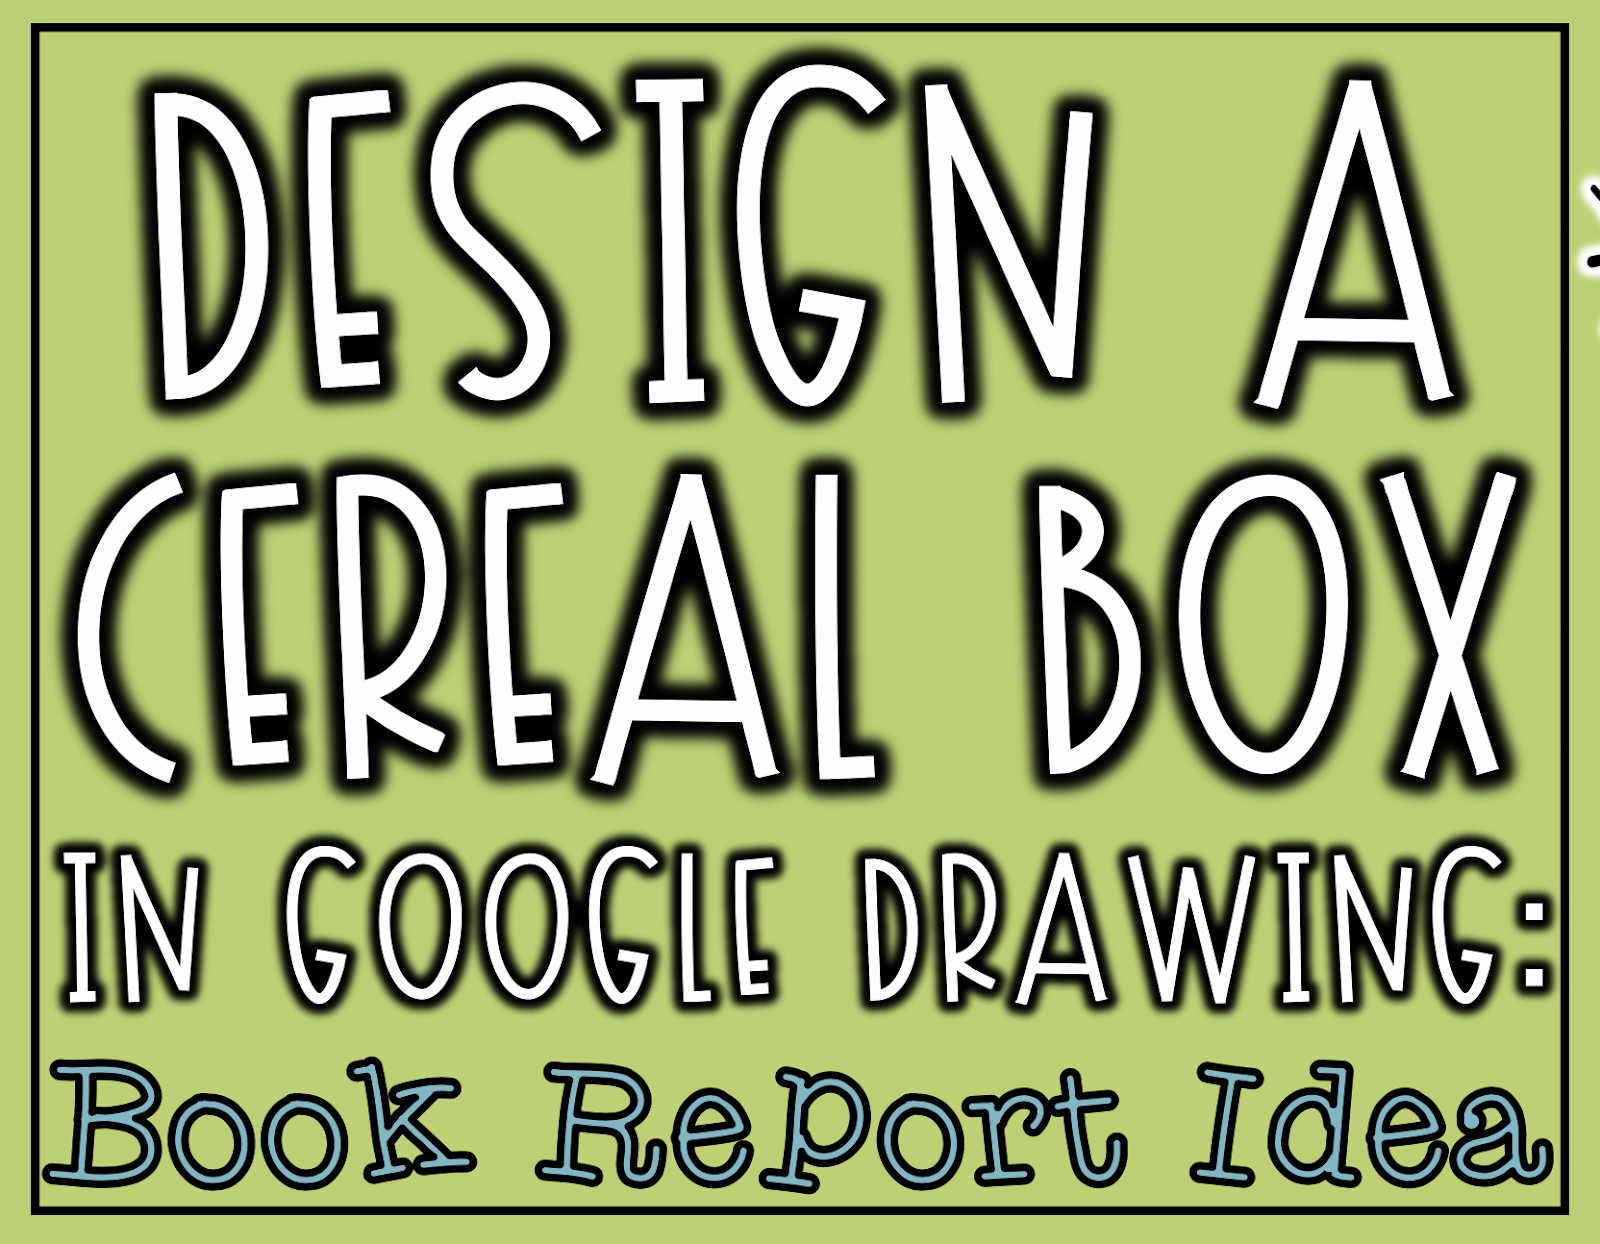 Spice up student book reports with this Design a Cereal Box in Google Drawing Activity. Ideas for using technology as well as paper and coloring utensils are included.